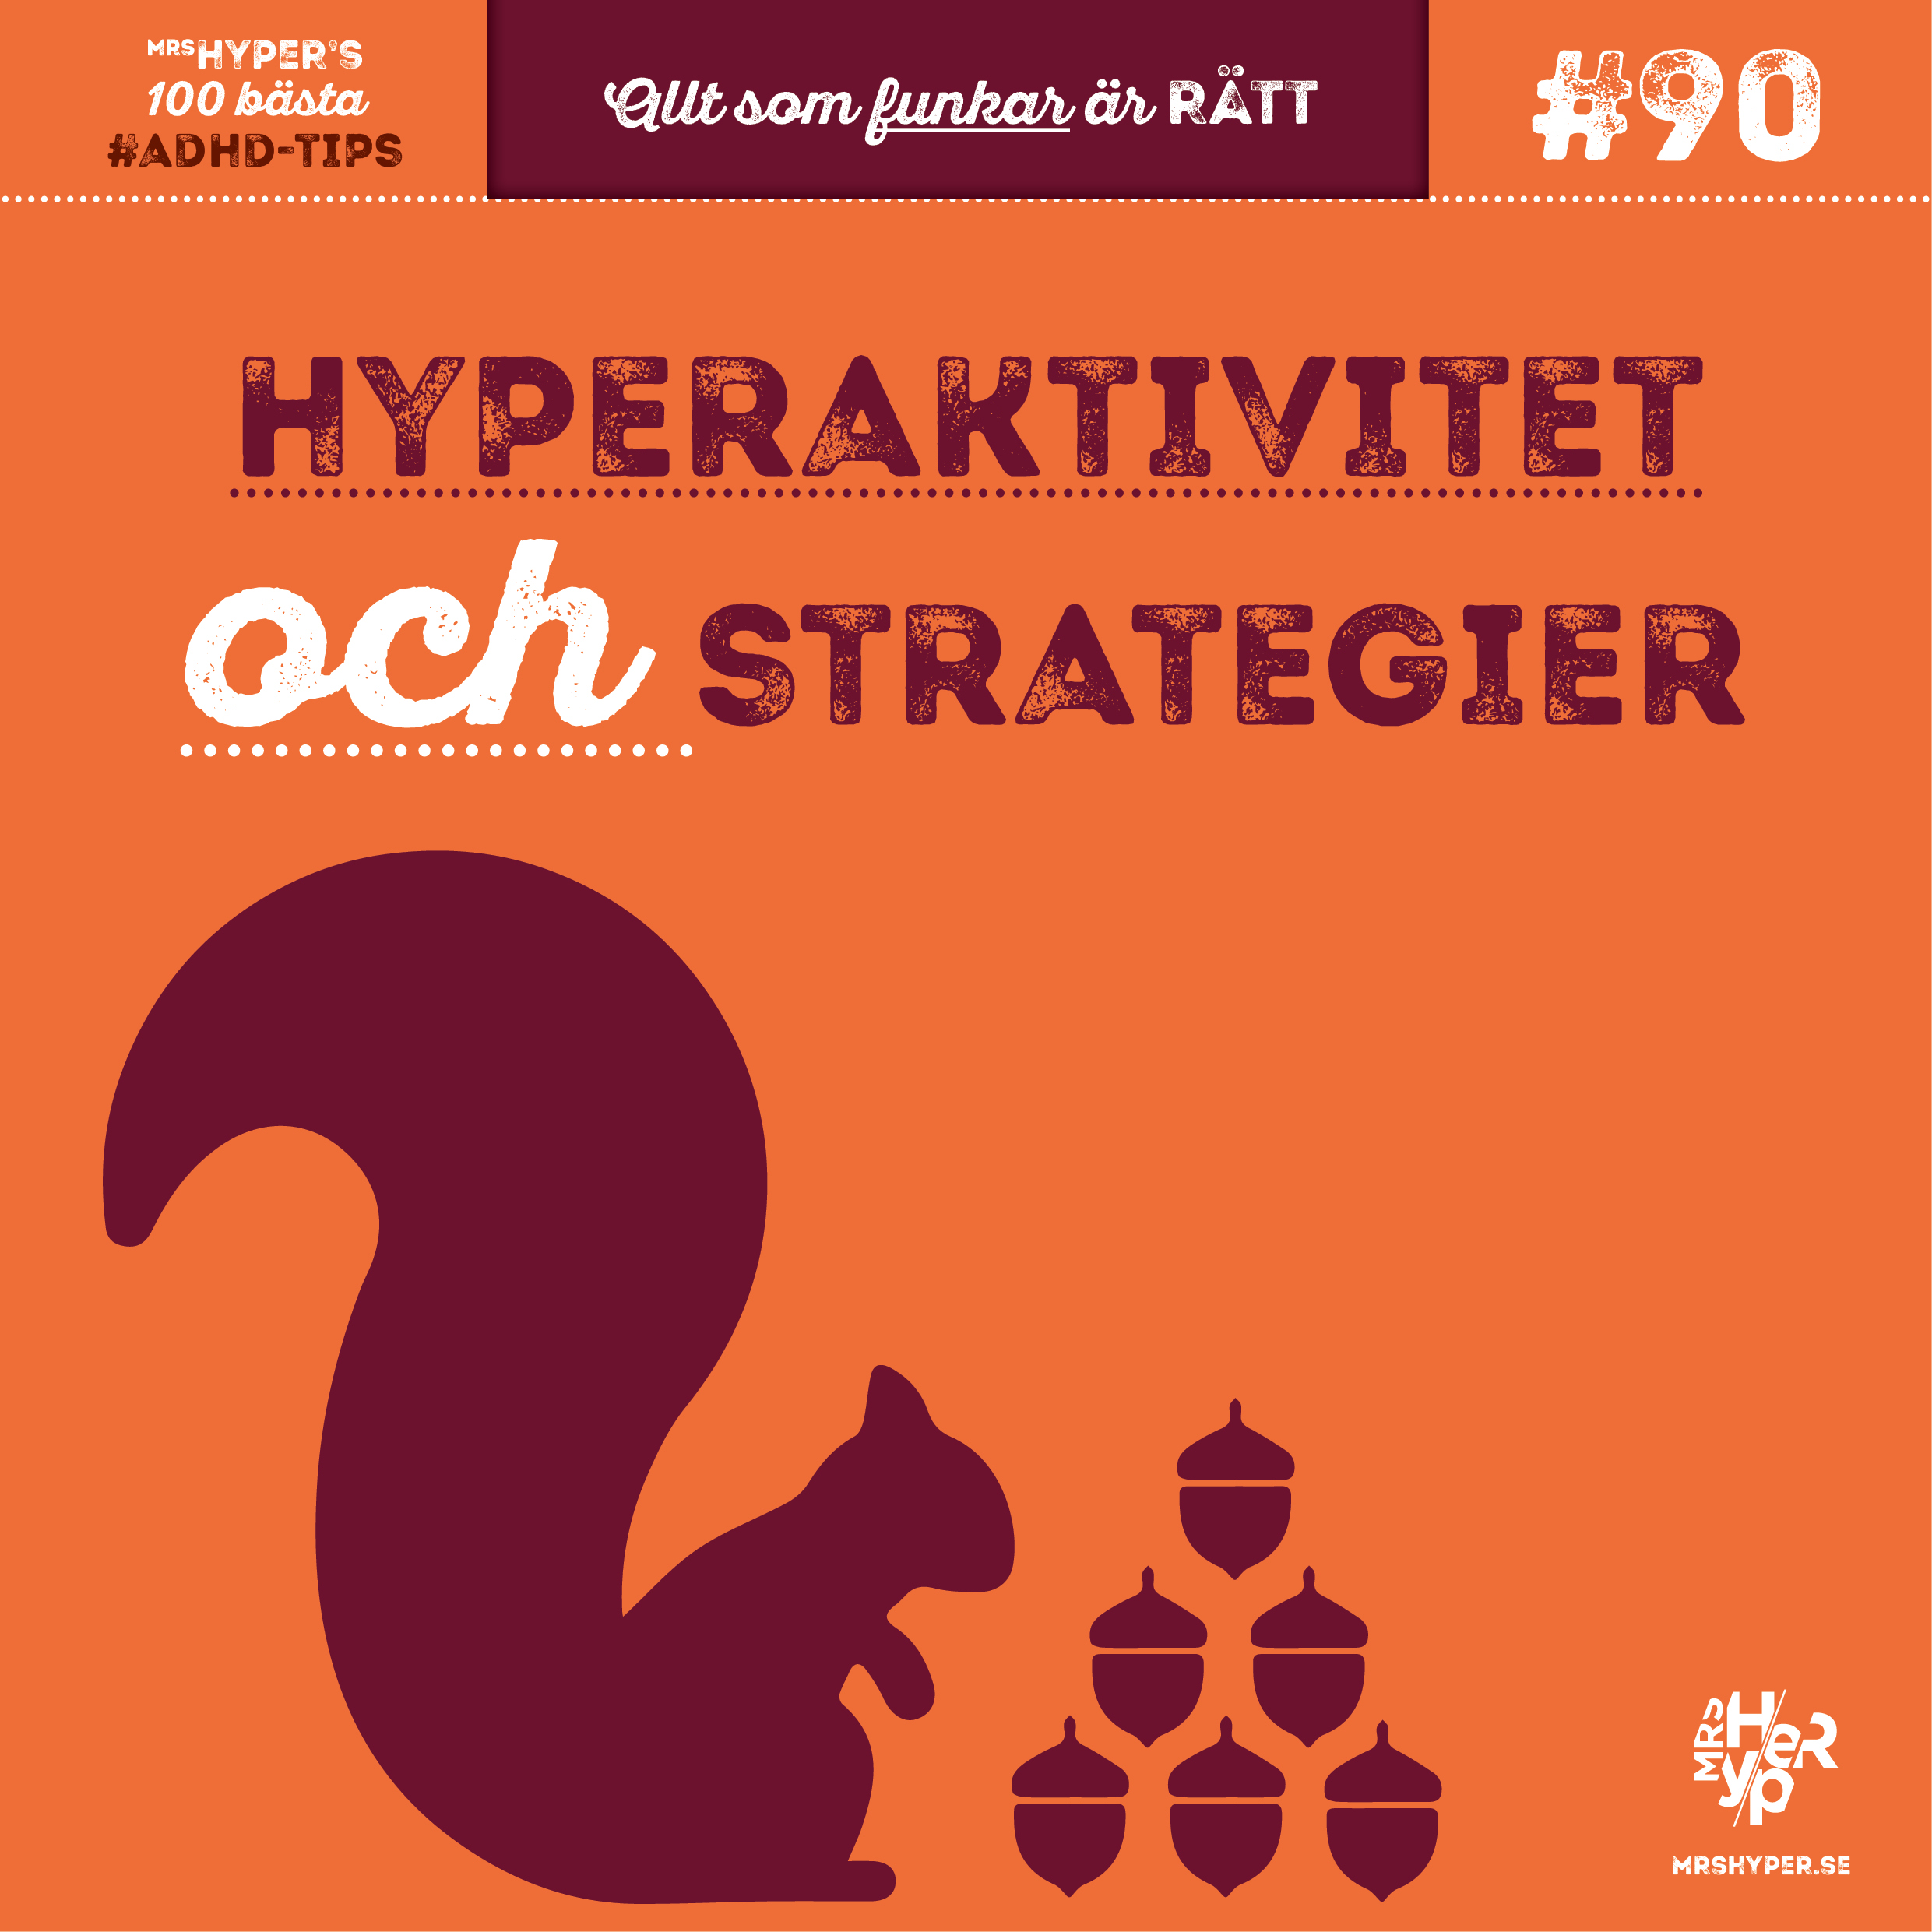 ADHD-tips #90. Hyperaktivitet och strategier